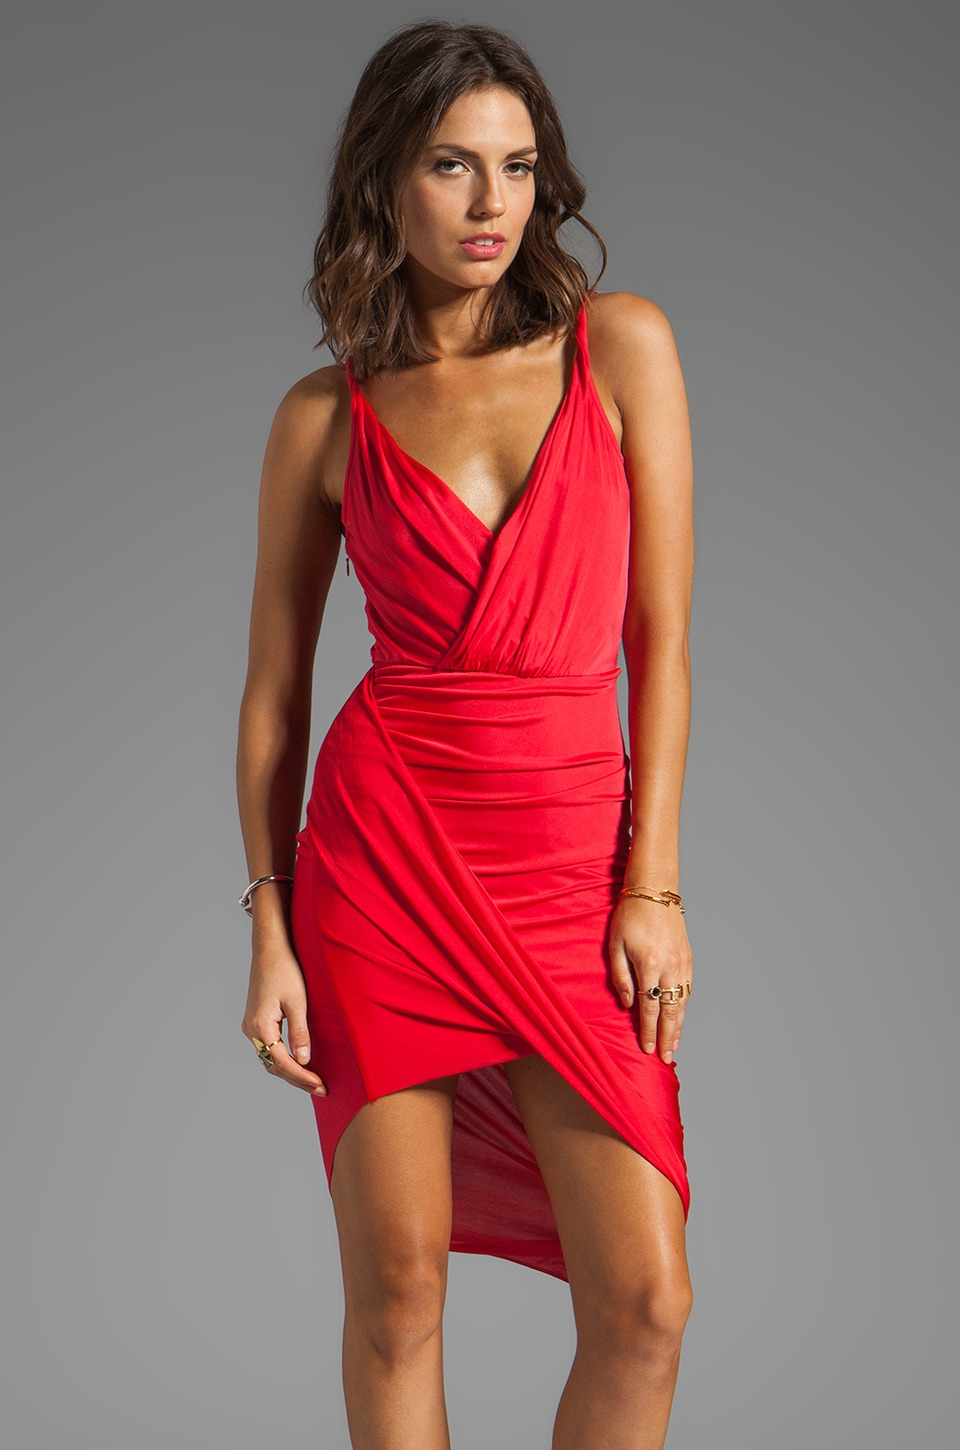 Jay Godfrey Viceroy Dress in Red